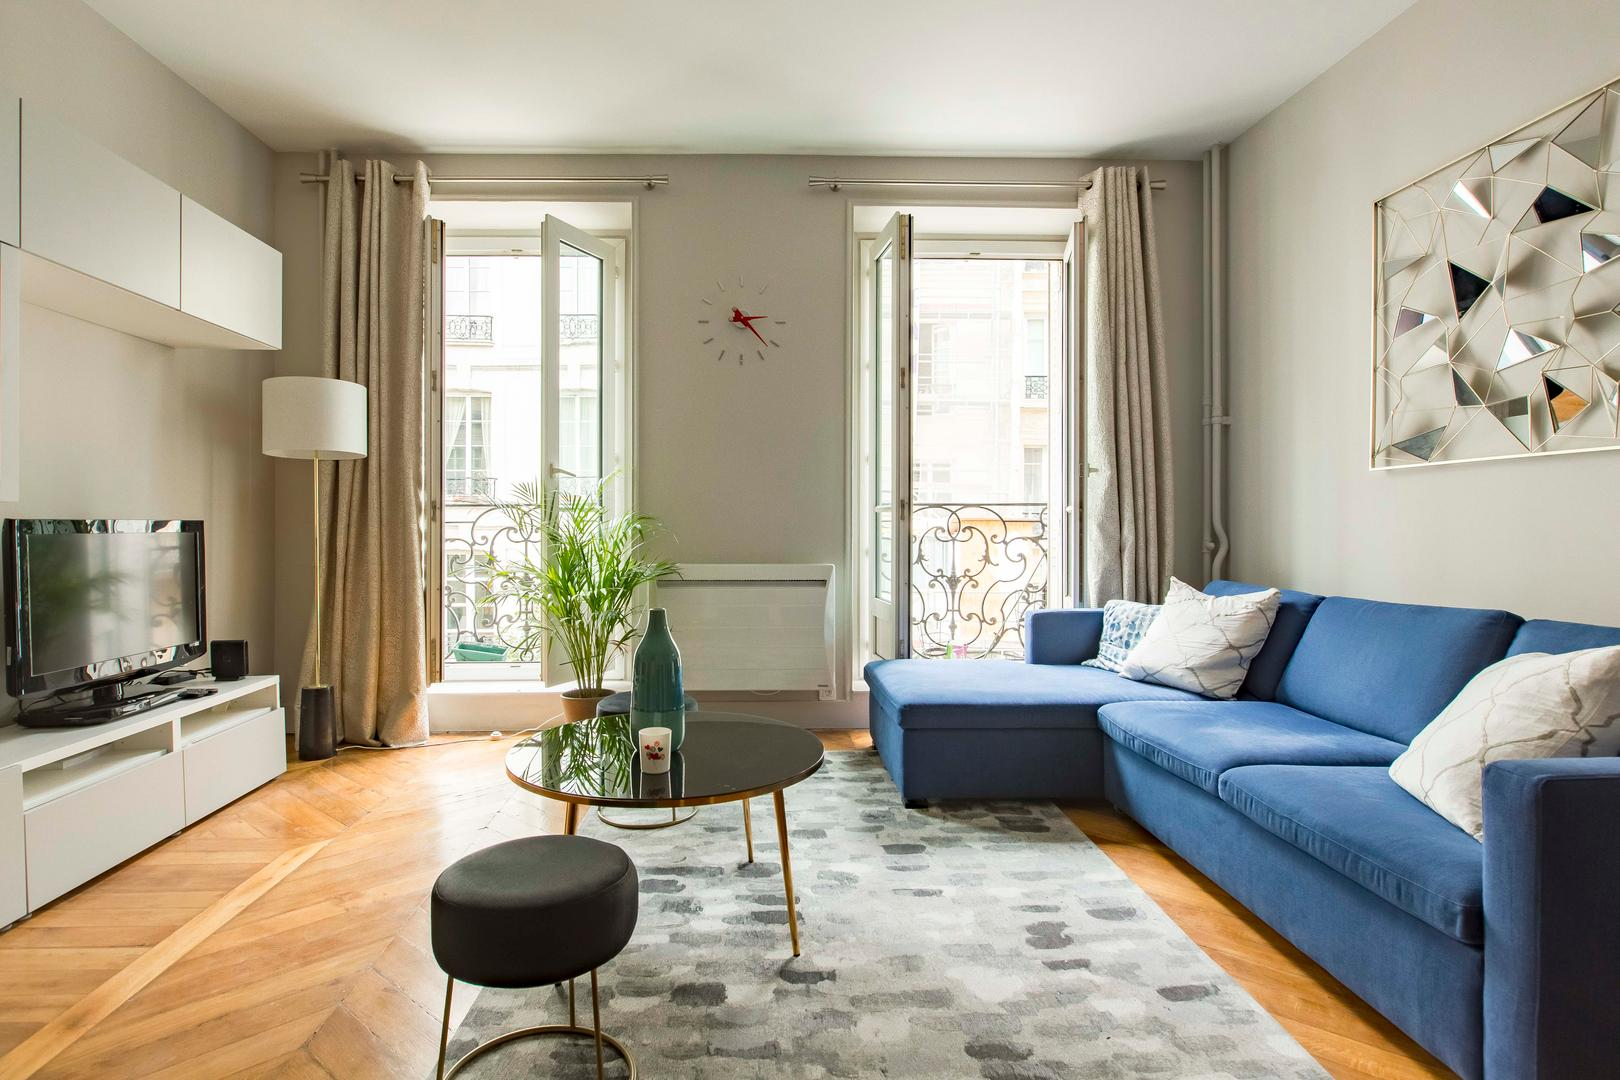 Property Image 1 - Fashionable Apartment in the 1st with Elegant Décor